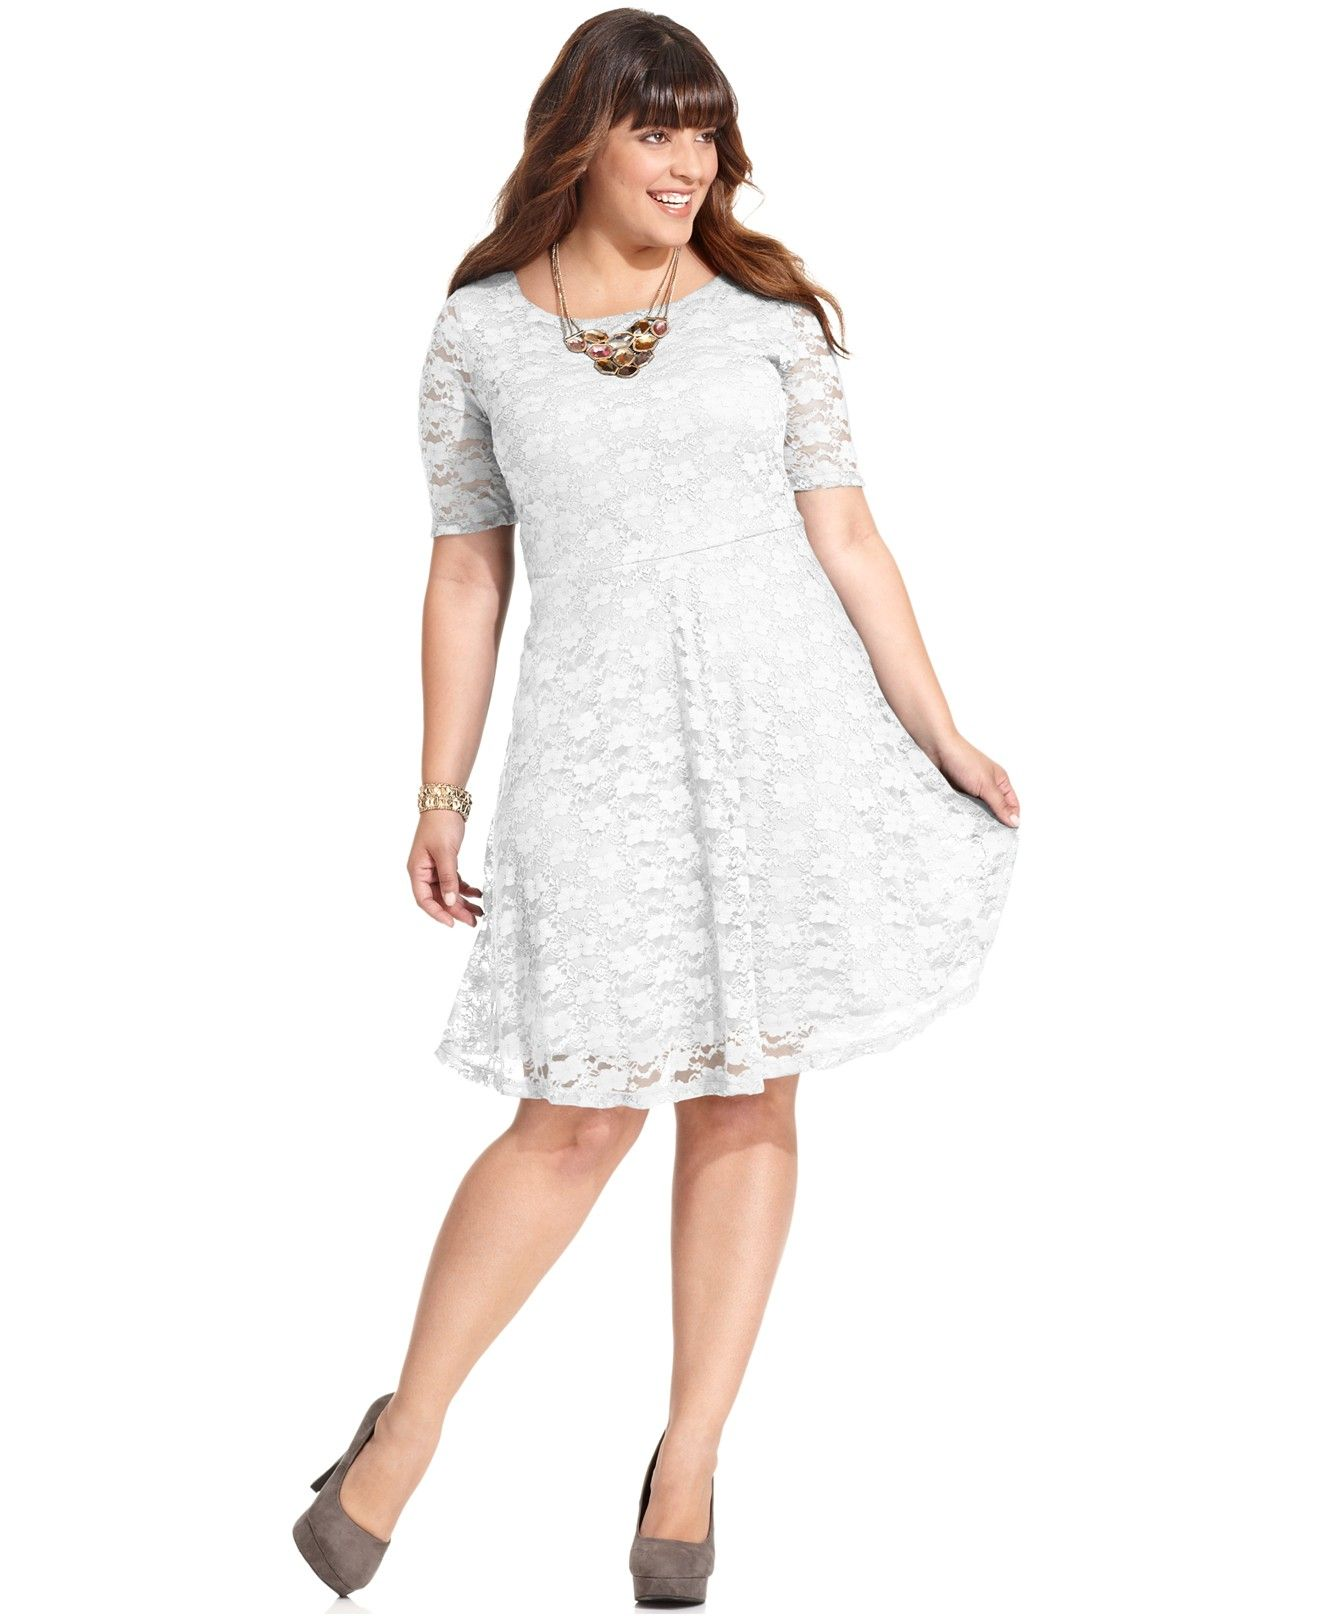 Love squared plus size dress short-sleeve lace a-line wedding